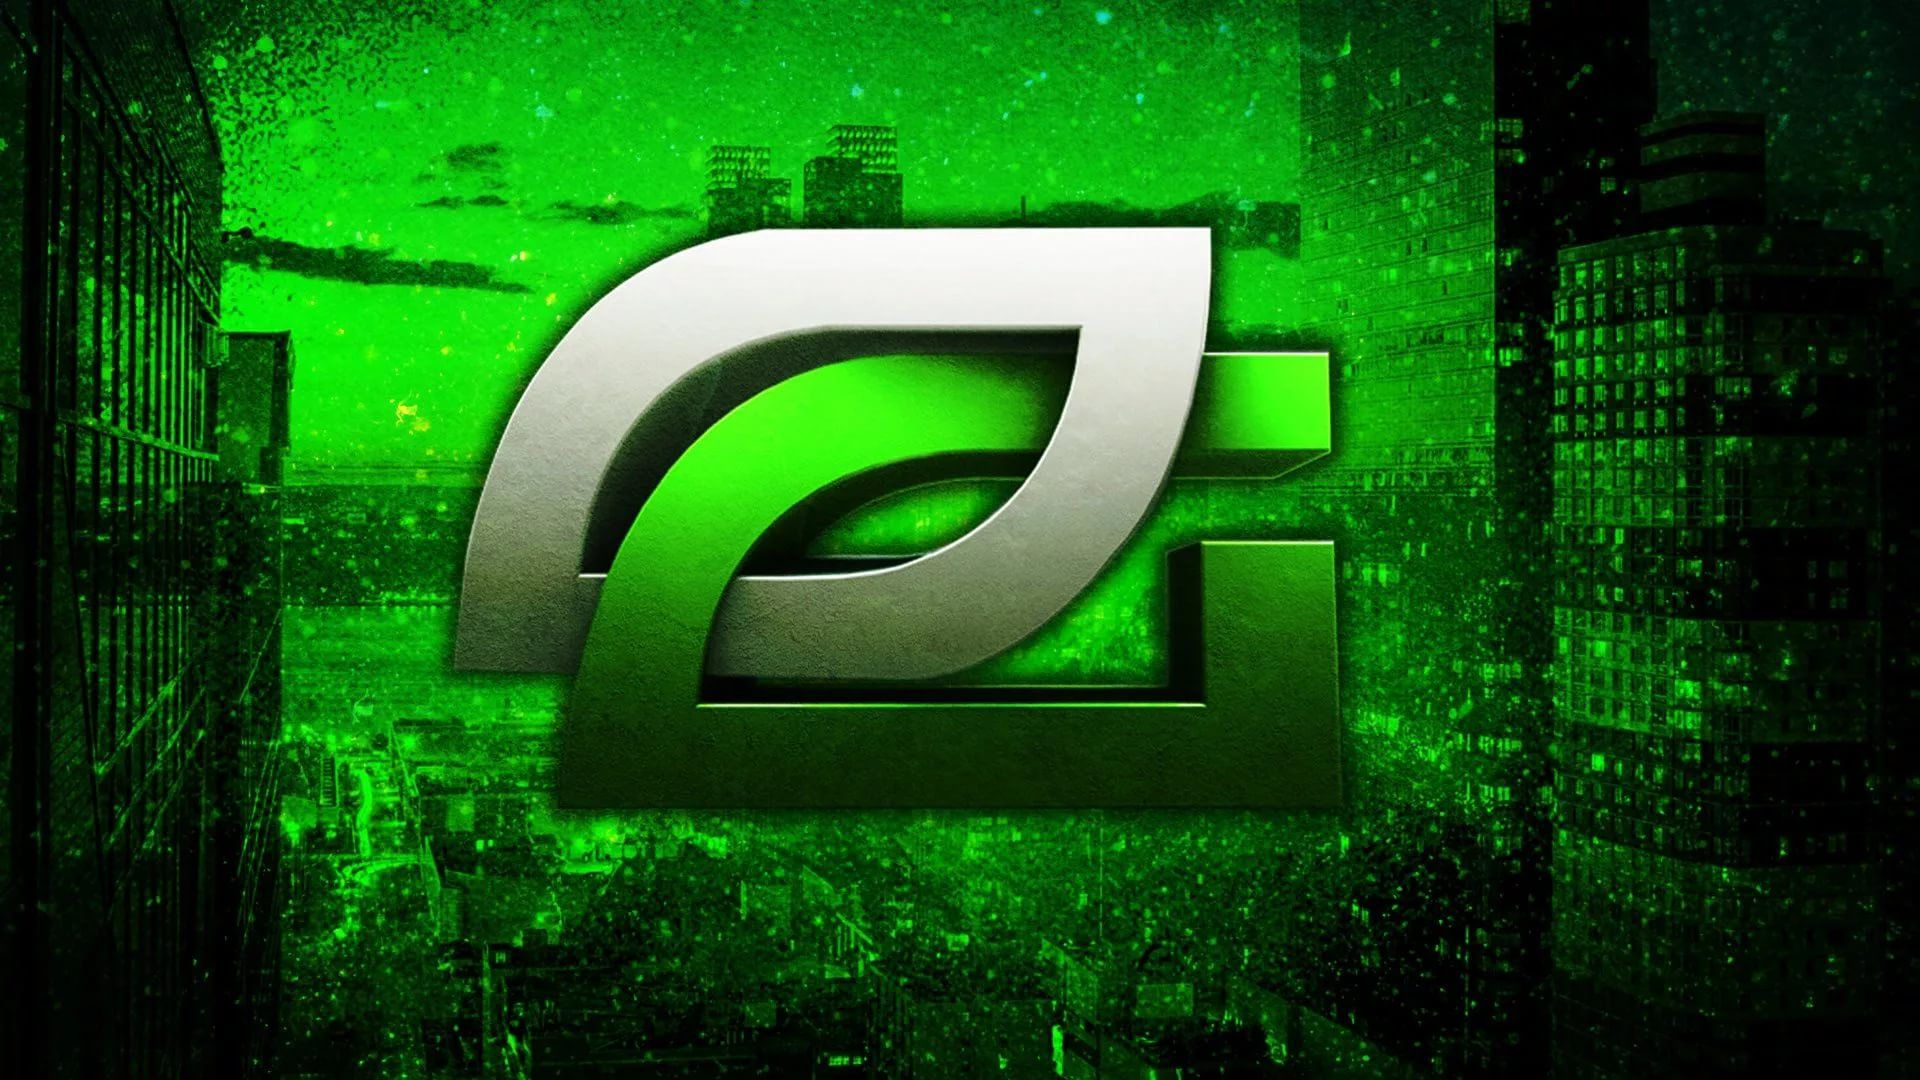 Optic Gaming full hd 1080p wallpaper